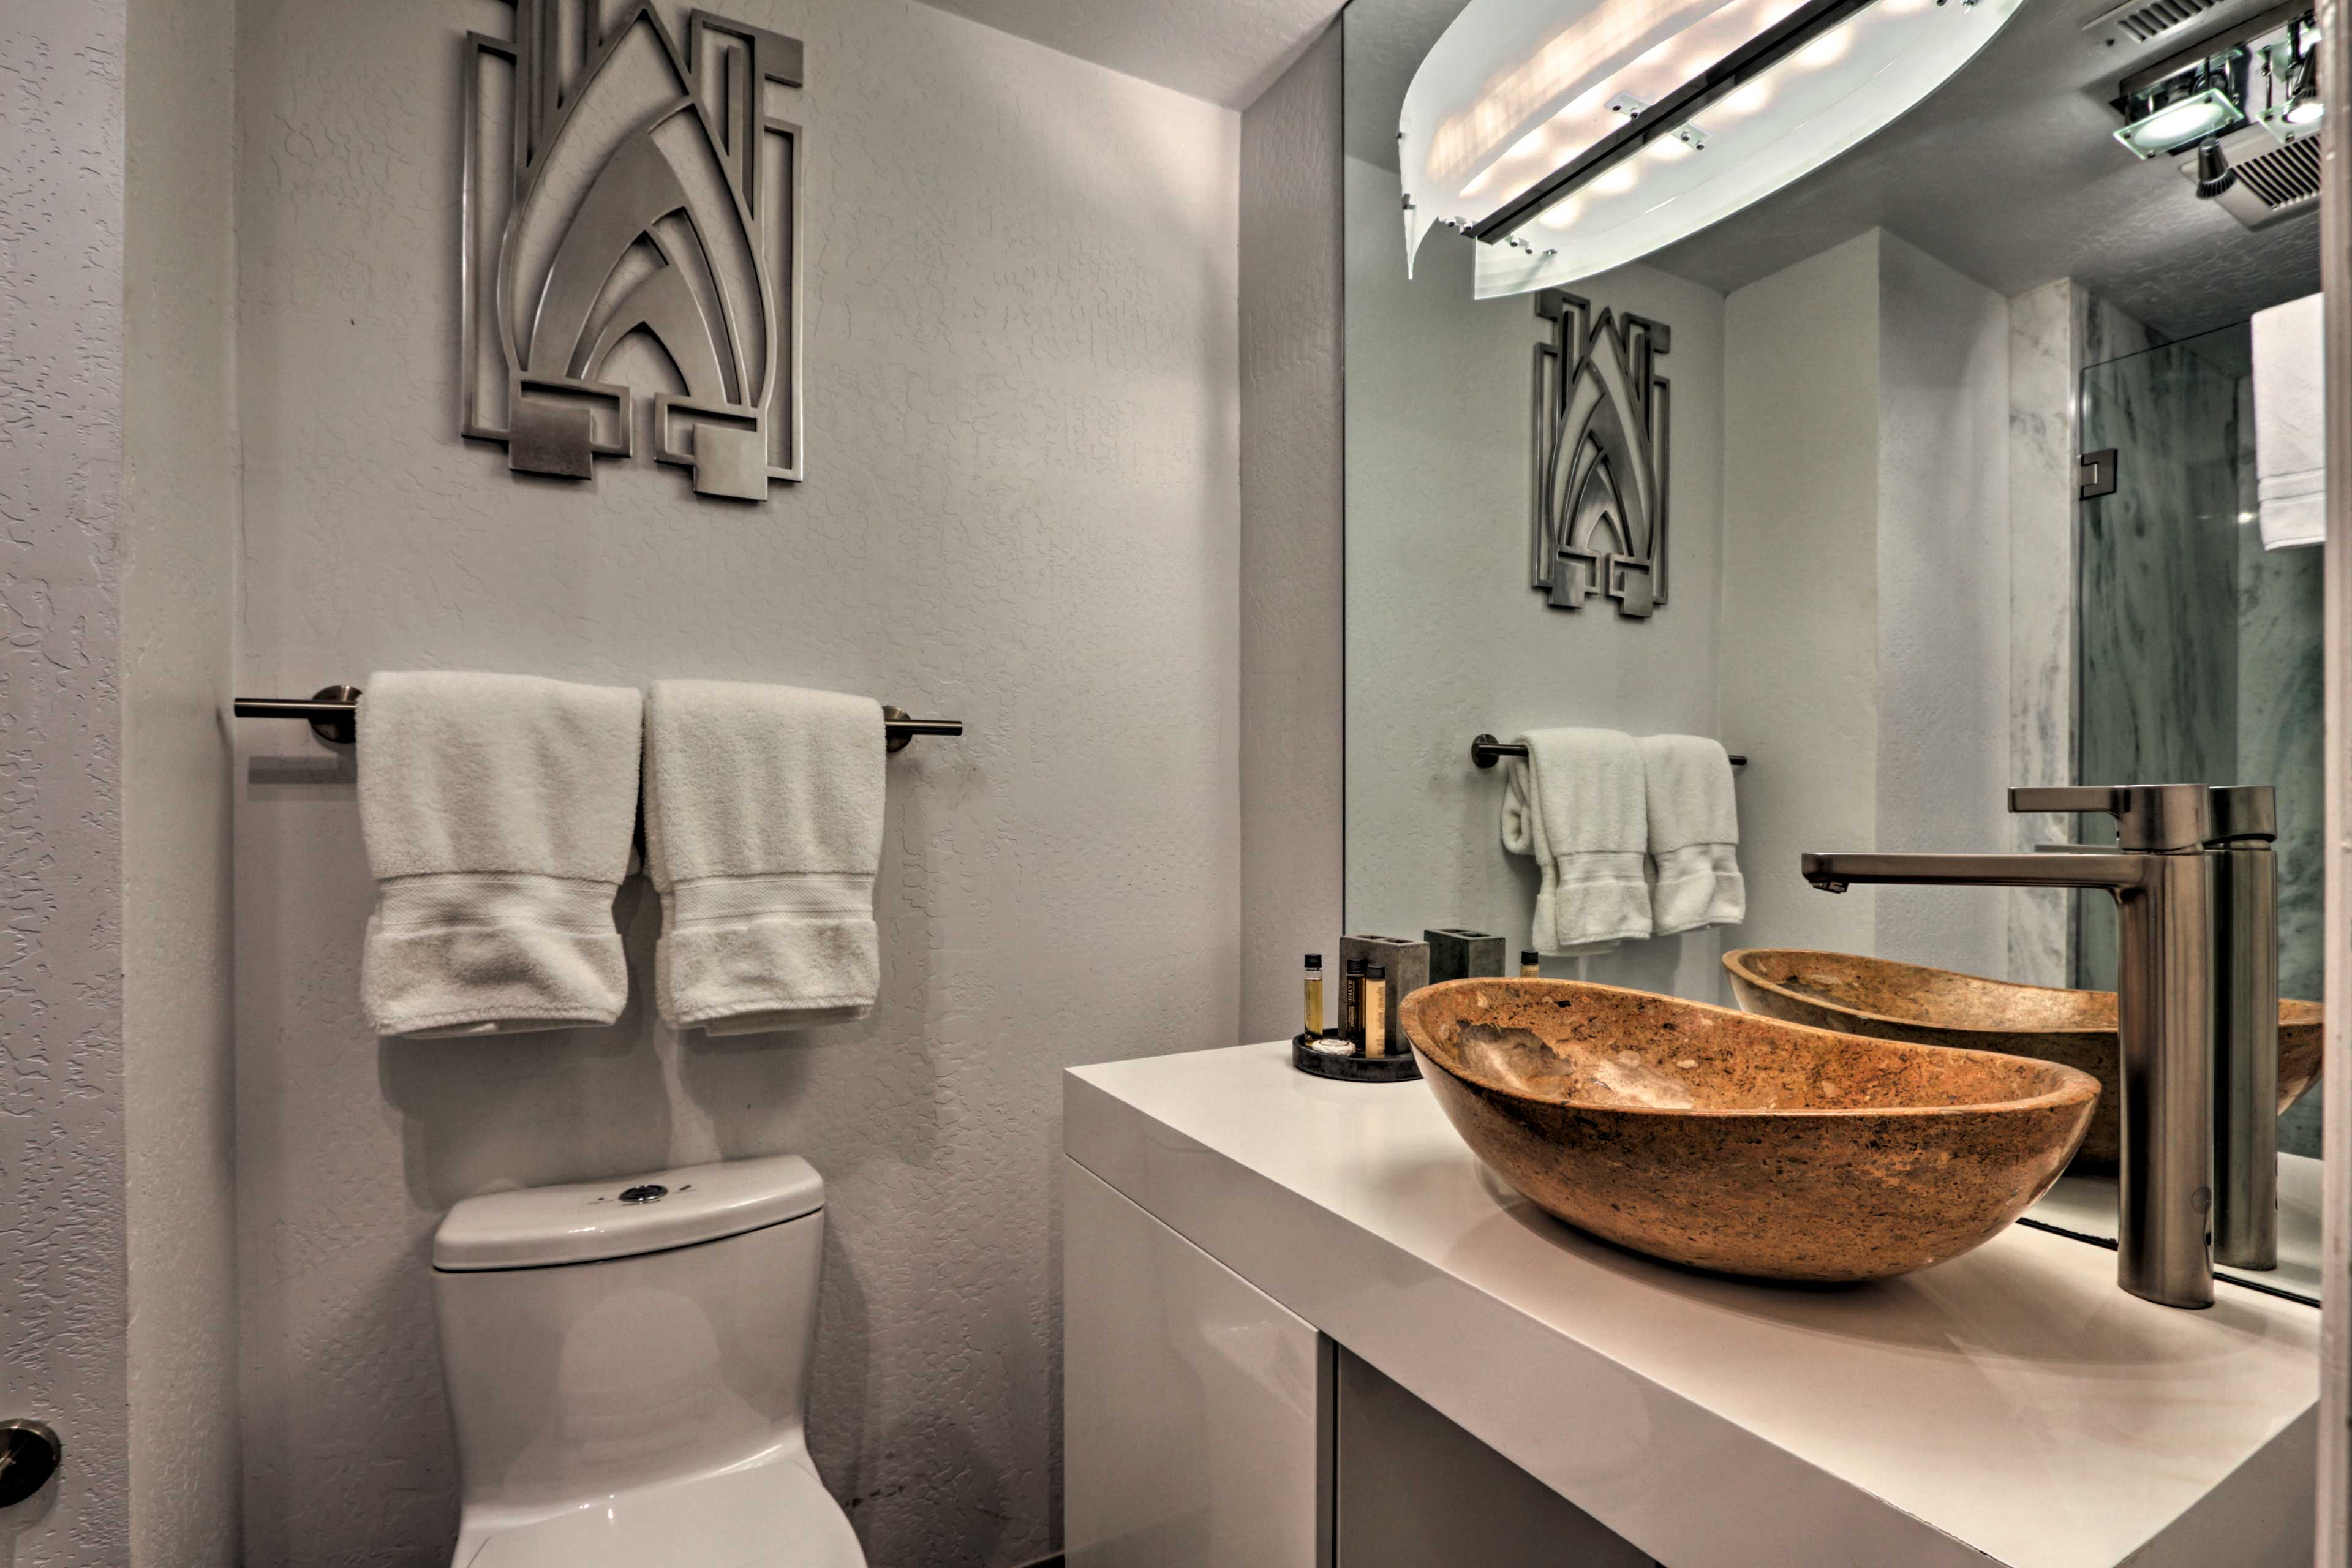 The en-suite bath boasts a stylish bowl sink and walk-in shower.